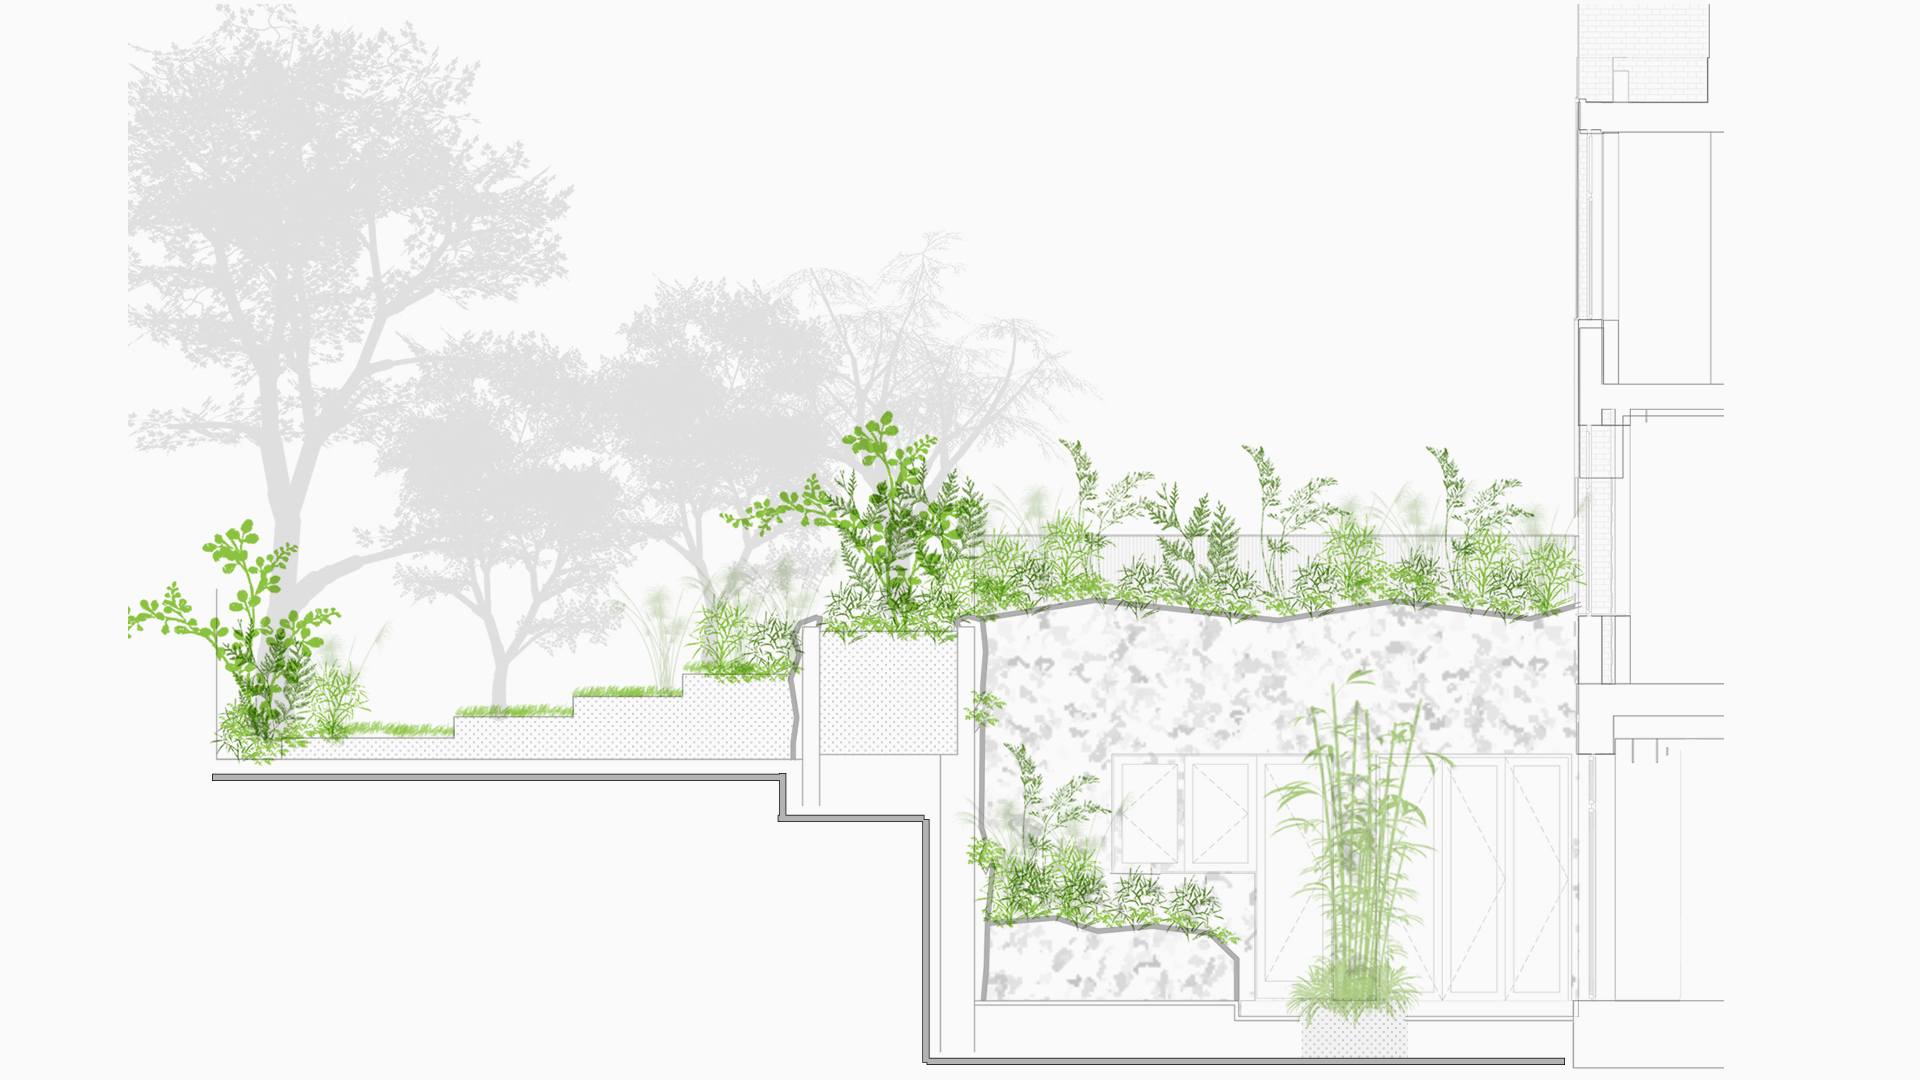 Hampstead Landscape Design and Planning